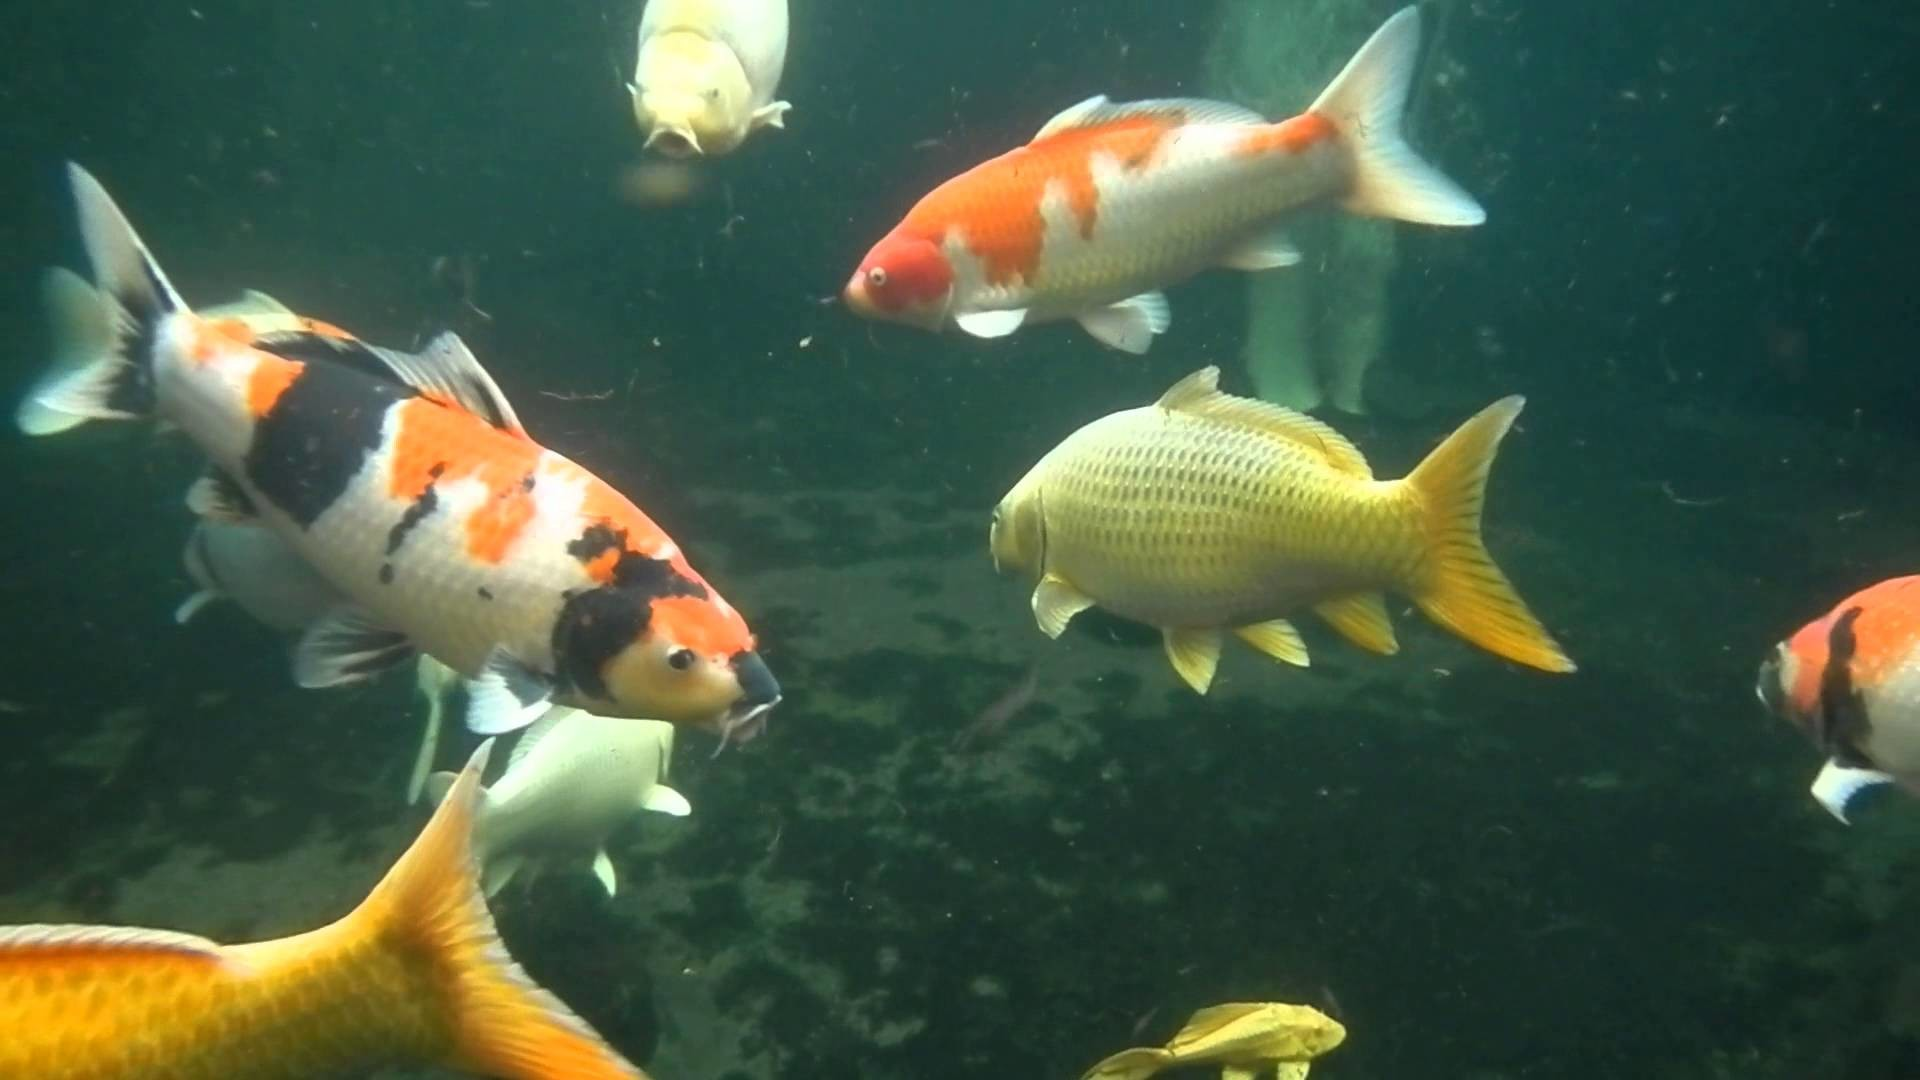 Water Proof Camera video of my Koi Pond under water, see my koi fish trying  to eat the camera – YouTube